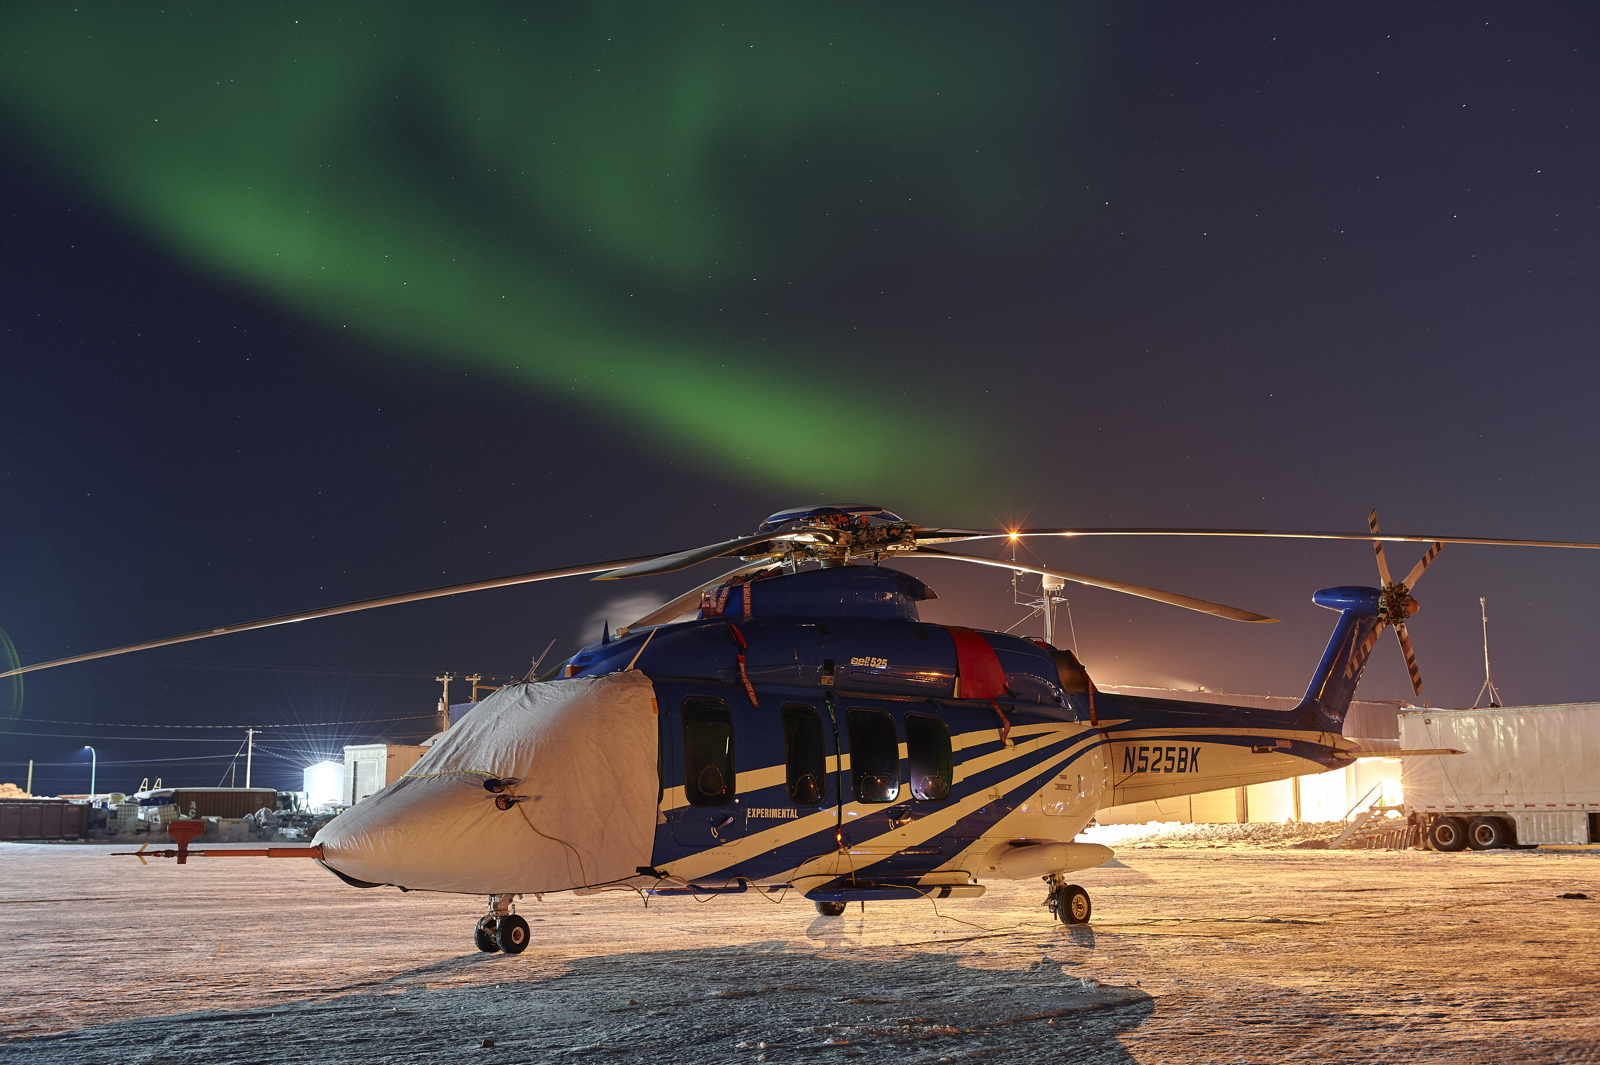 Bell 525 with aurora